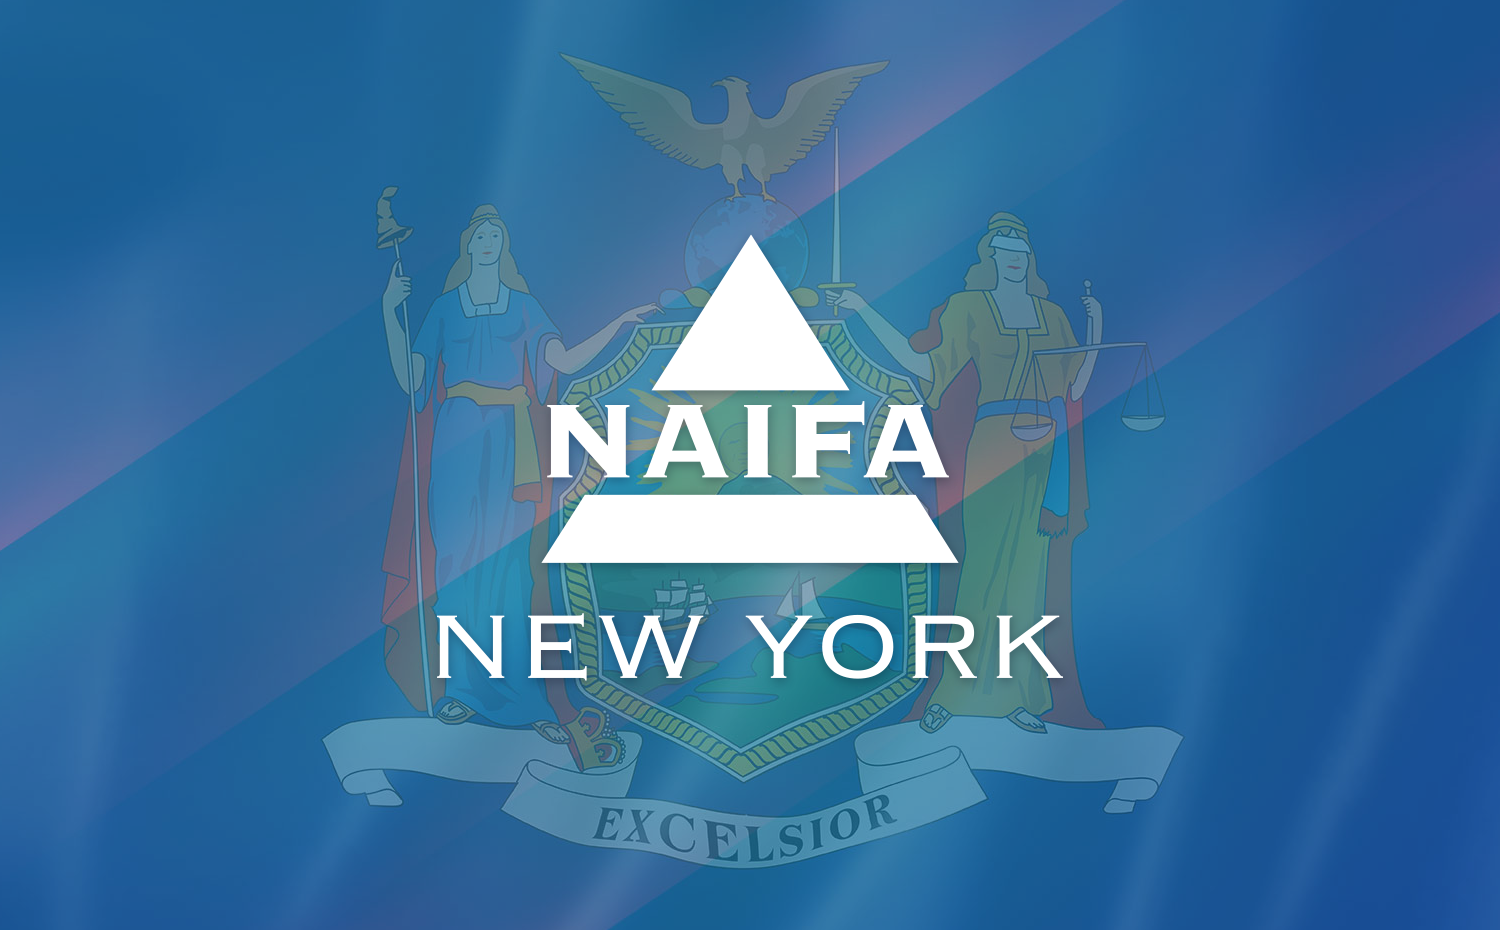 NAIFA New York